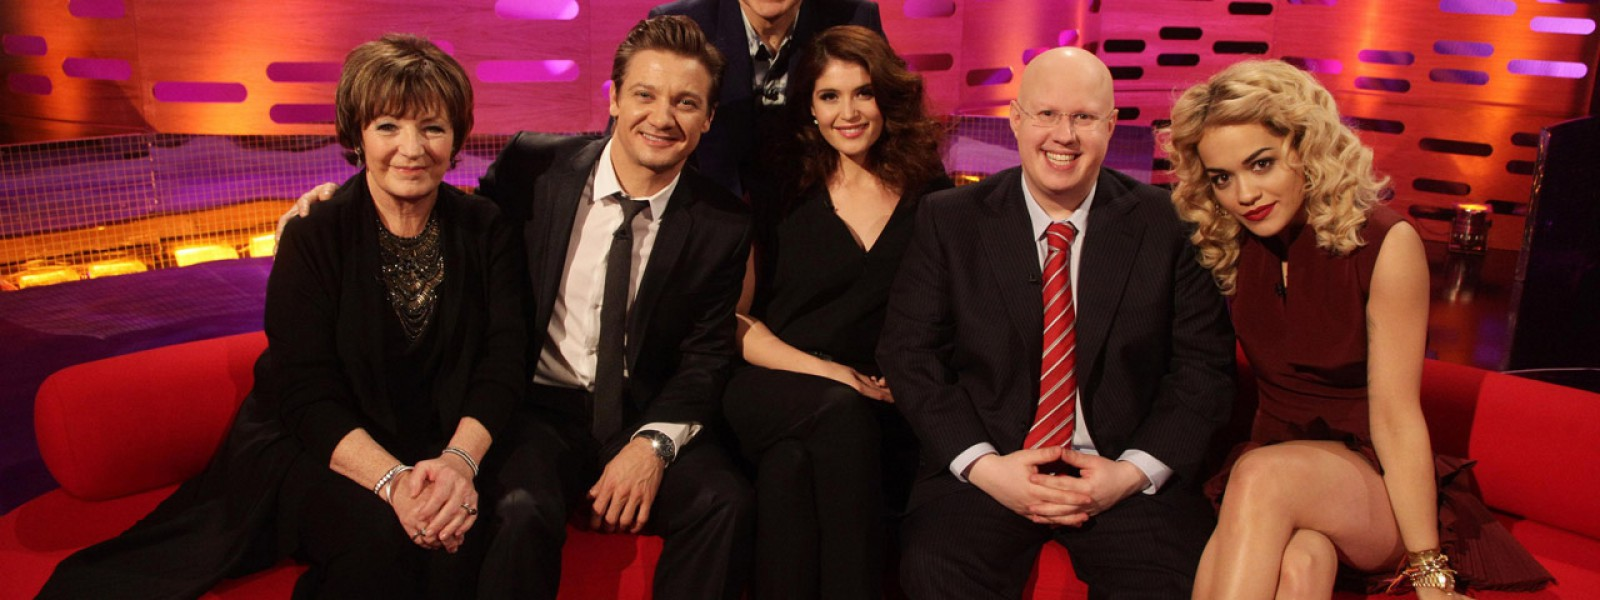 grahamnorton_photo_s12_e16_01